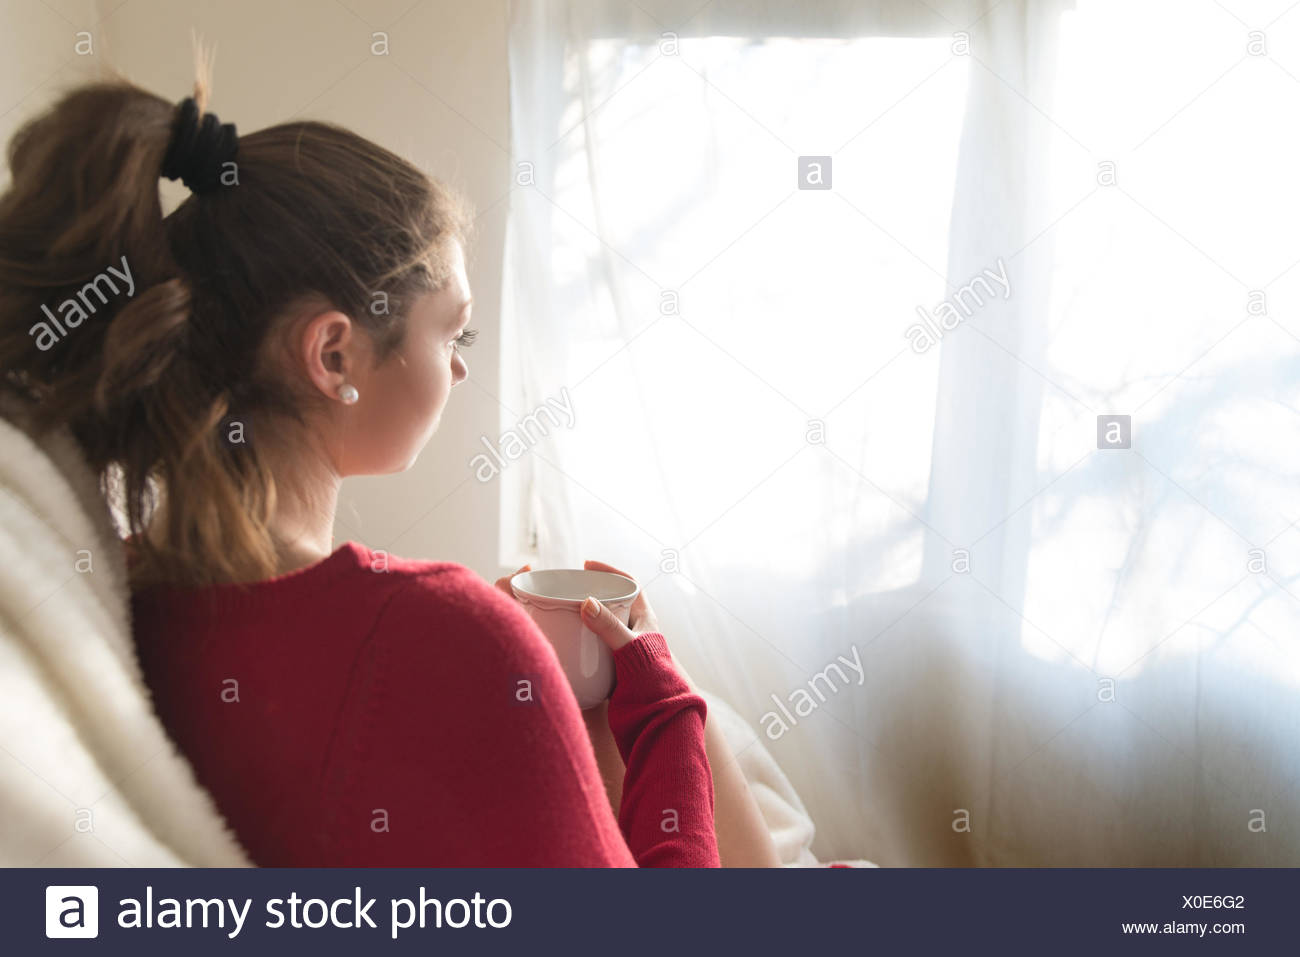 Girl with cup of tea looking through window - Stock Image